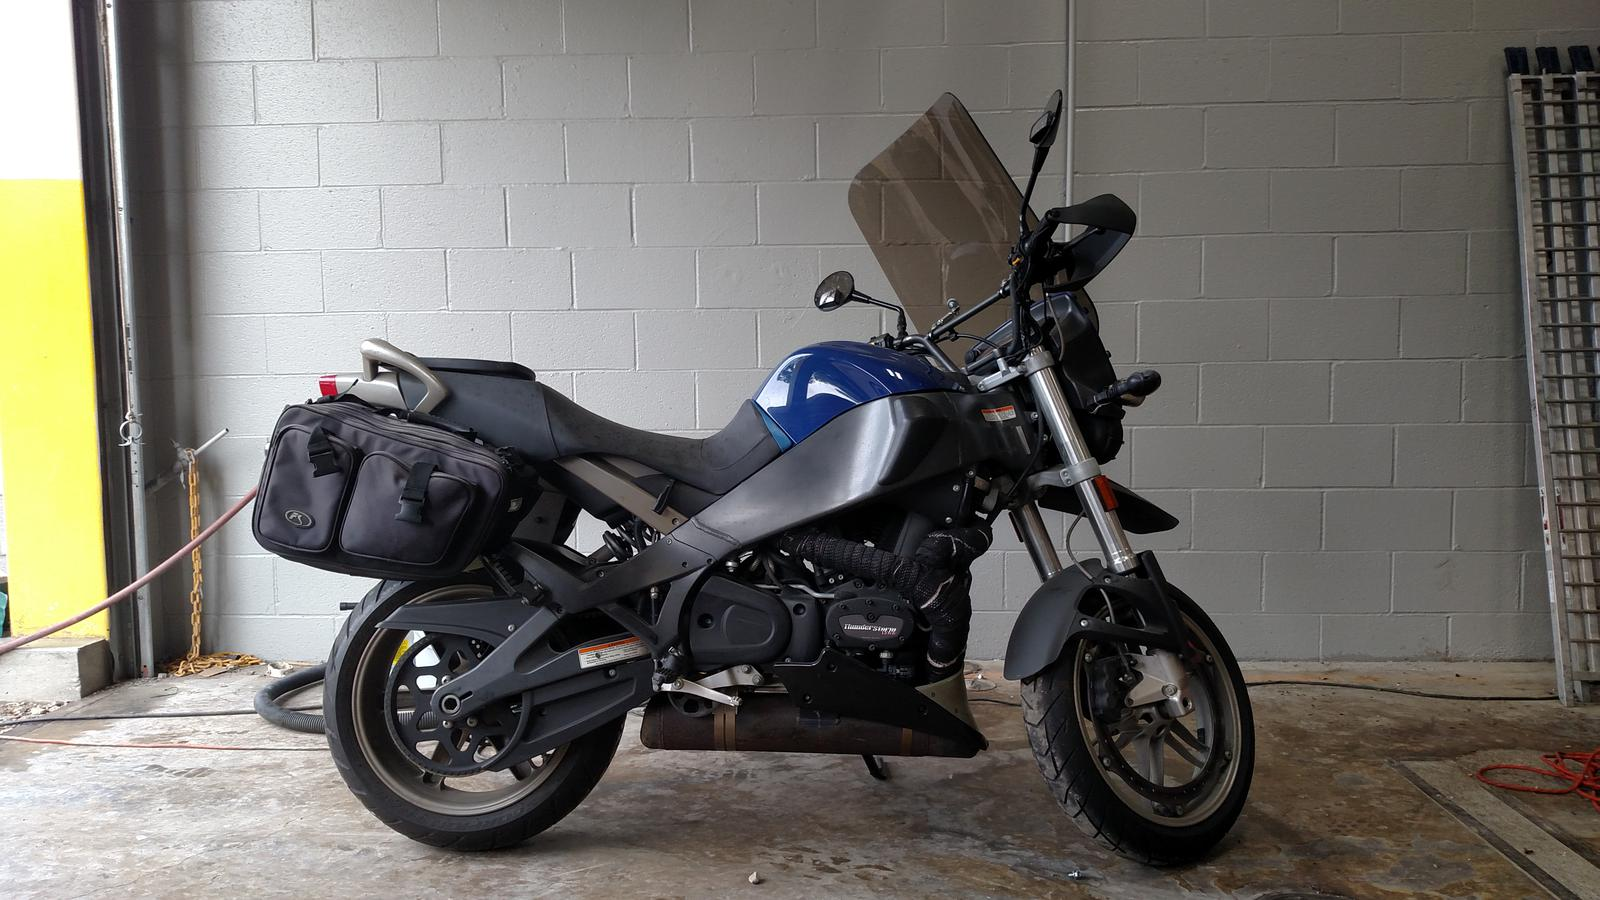 2009 Buell XB12X Adventure, motorcycle listing